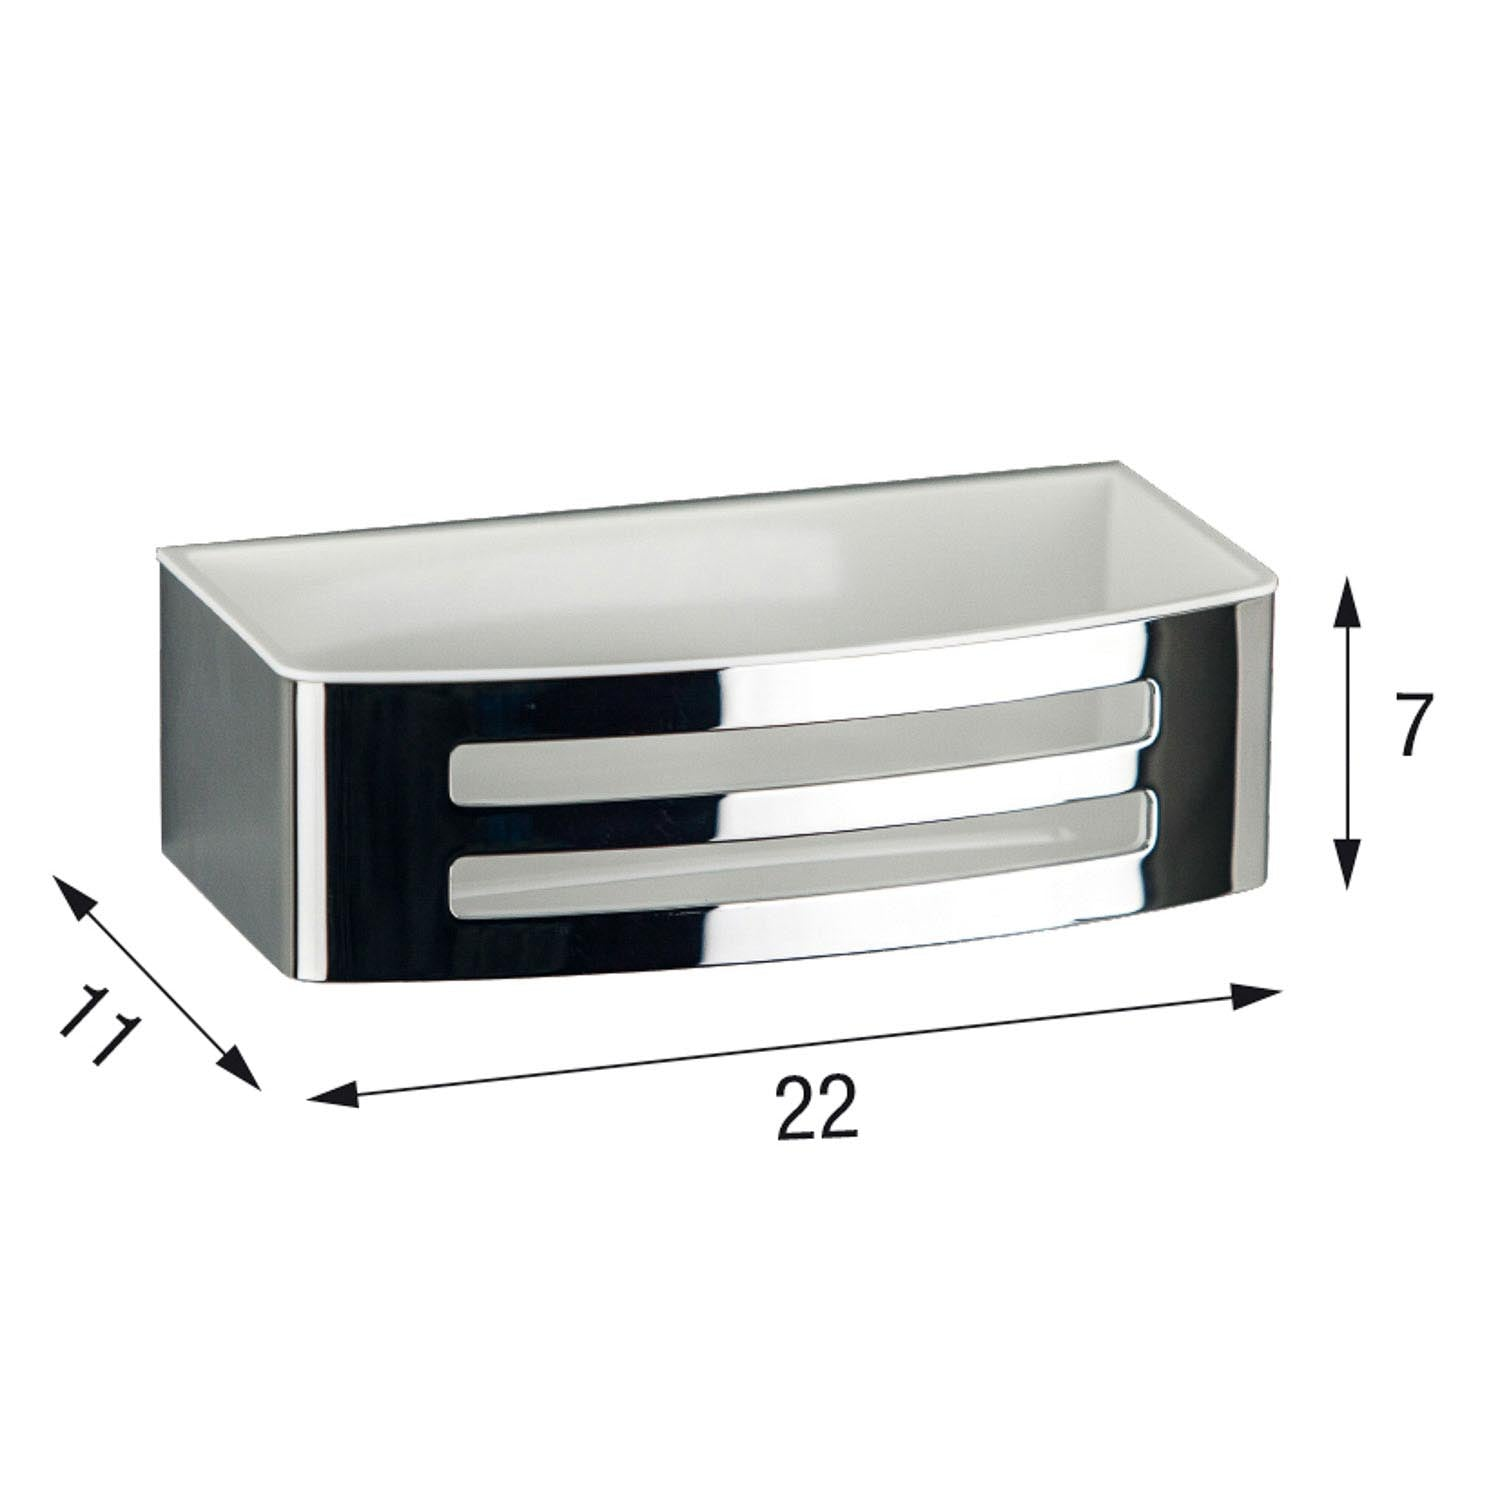 Easyclean Shower Basket with a chrome finish and black removable insert dimensional drawing